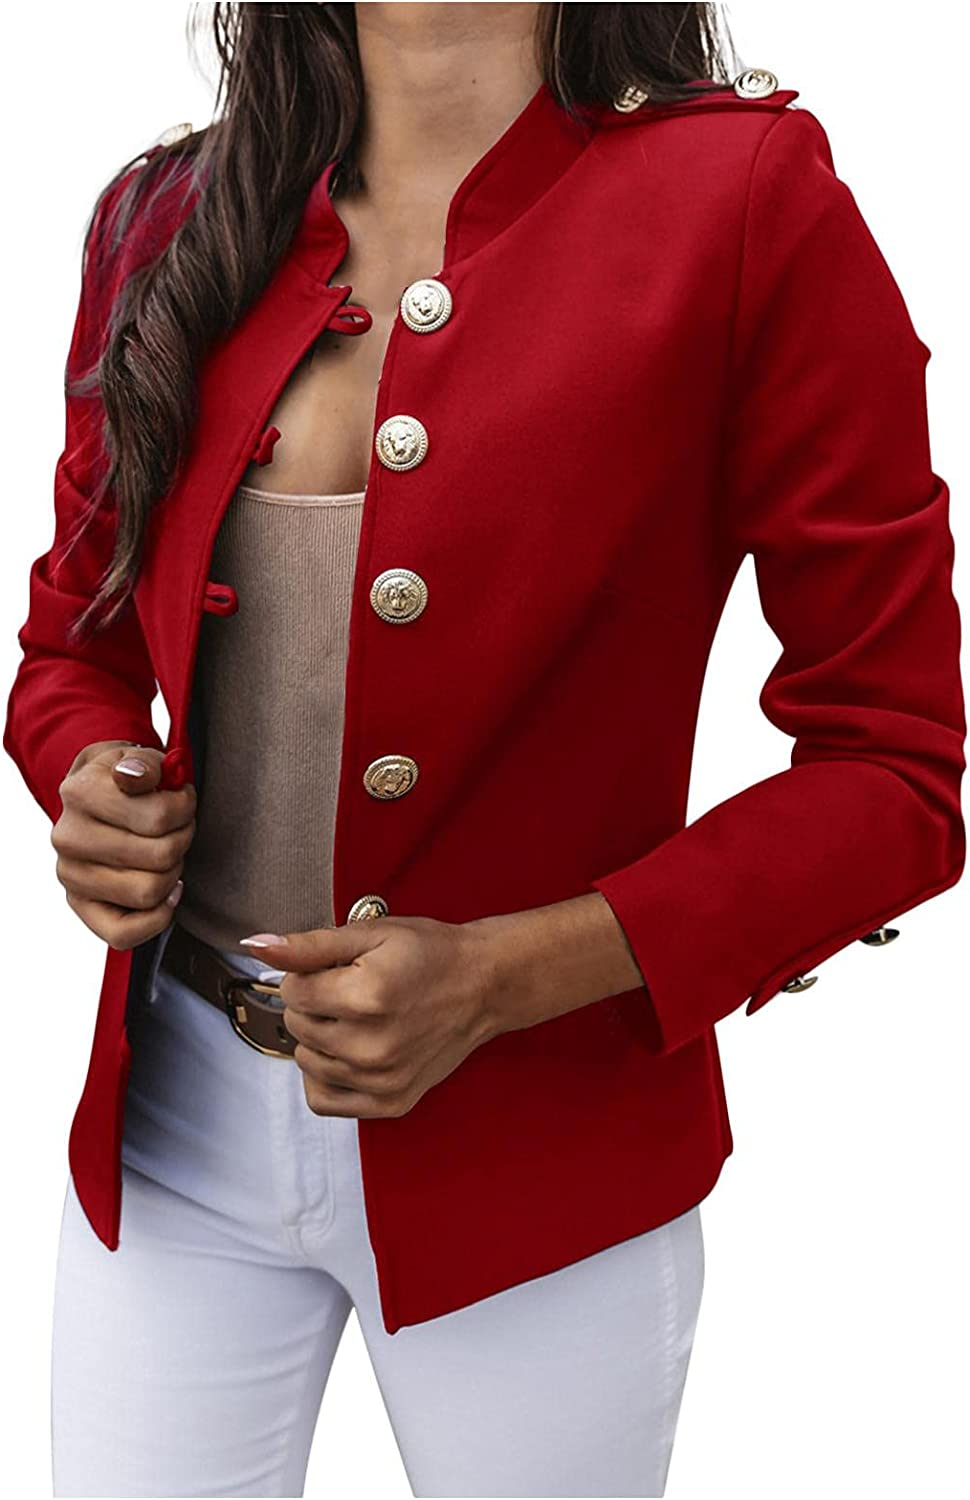 Women's Coat Buttons Down Round Neck Pullover Lace Stitching Long-Sleeved Fashion Tang Suit Improvement Sweater